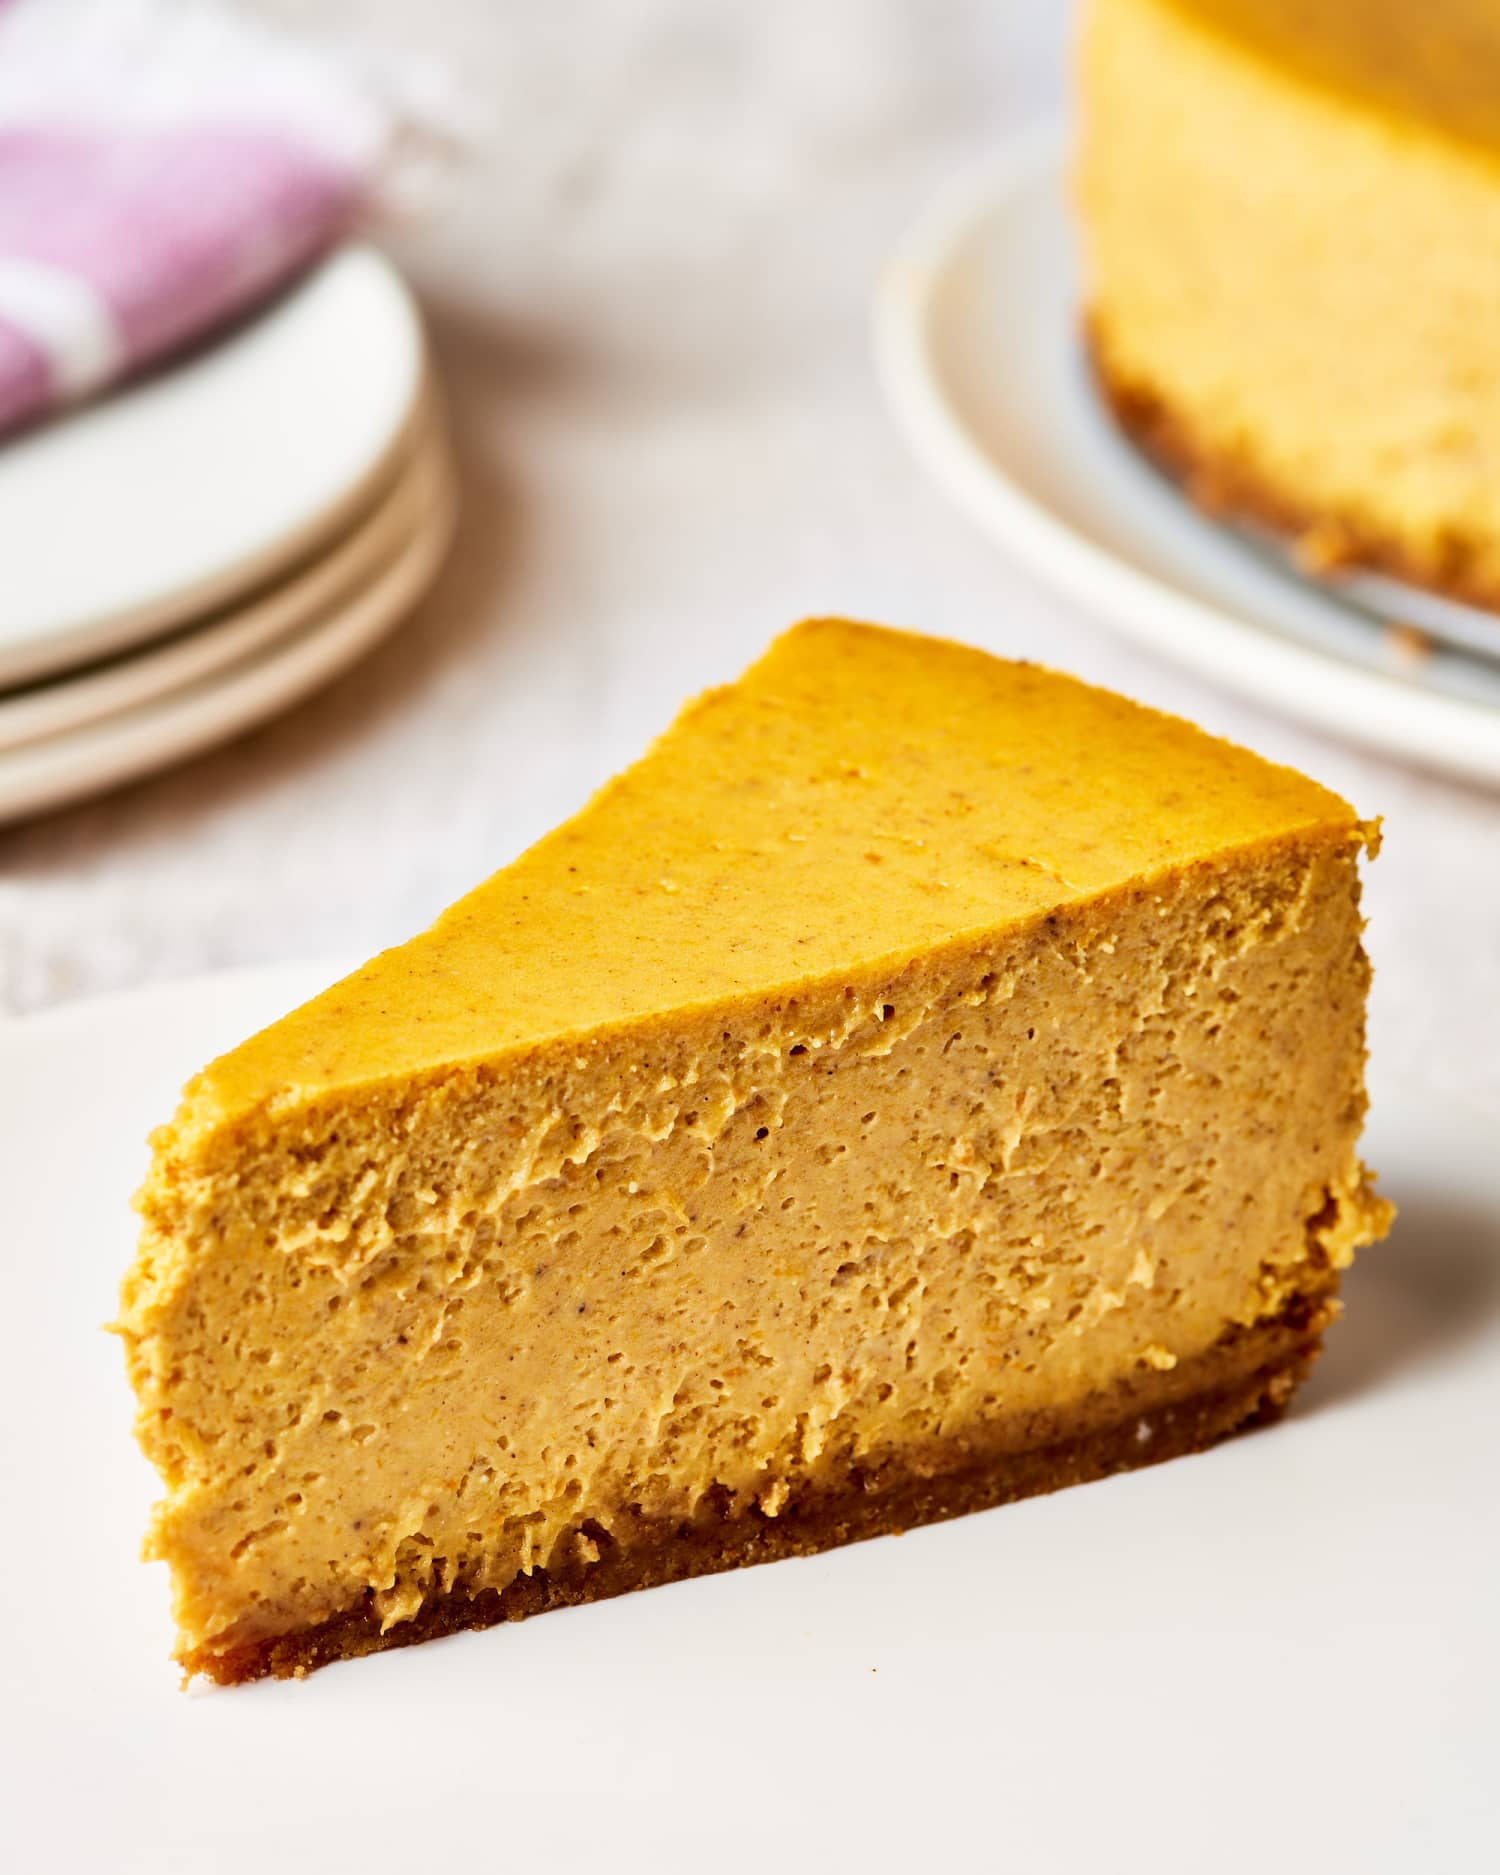 Our Most Popular Cheesecake Recipes of All Time